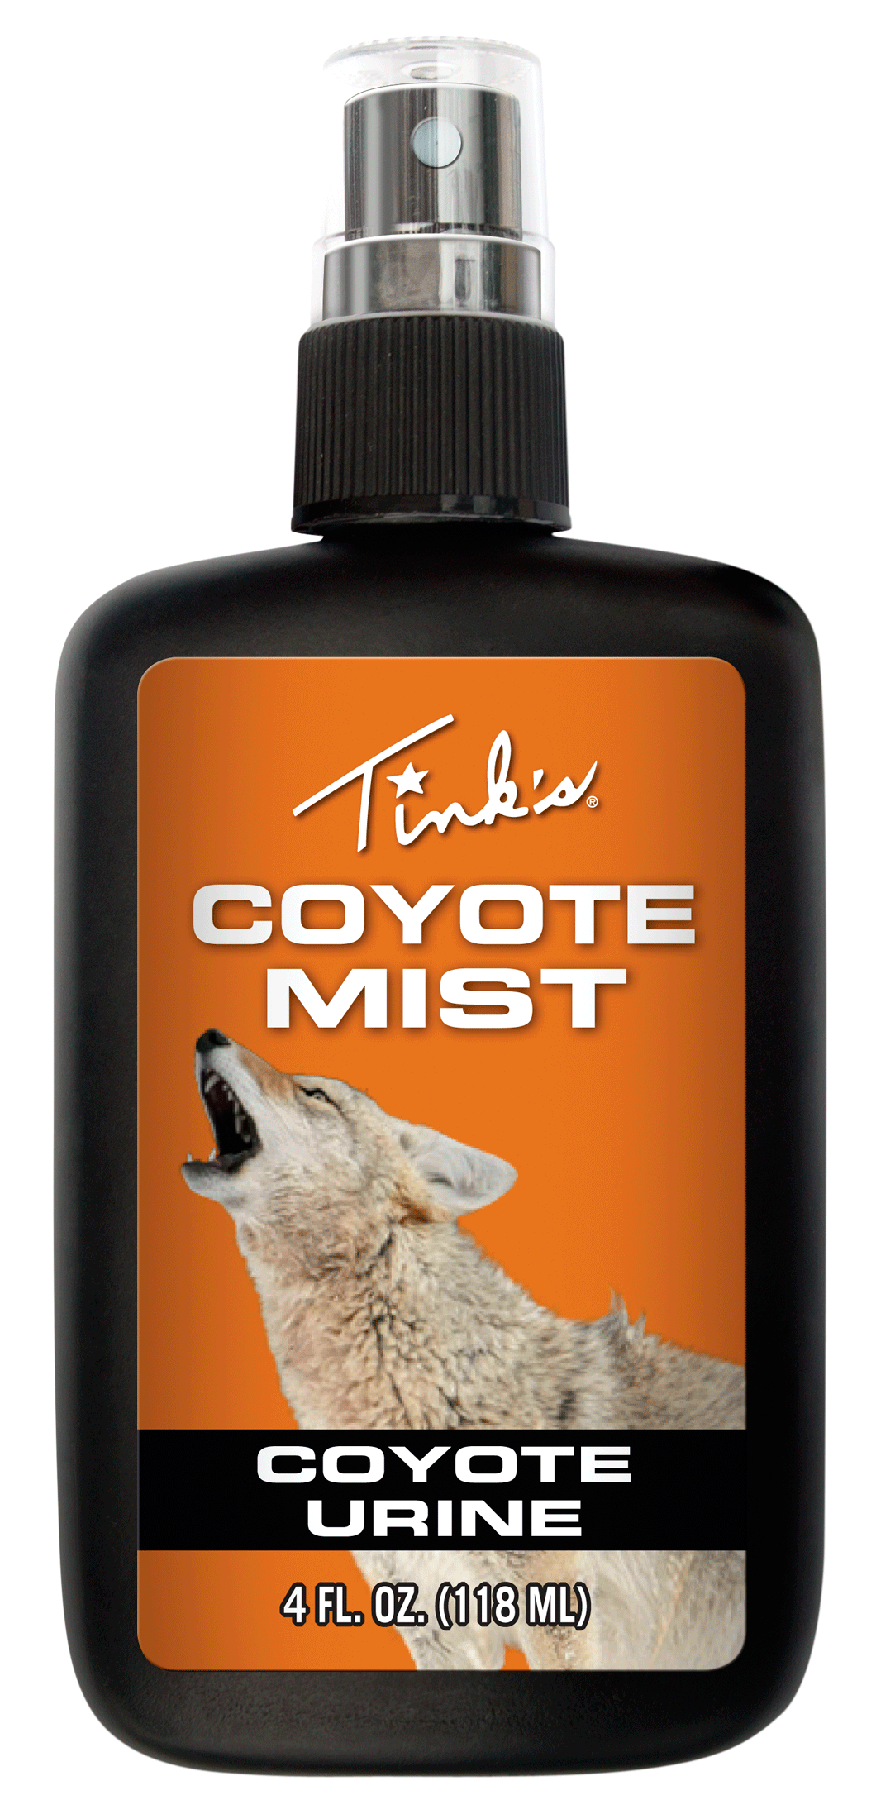 Tinks W6280 Coyote Mist Attractor 4 fl oz